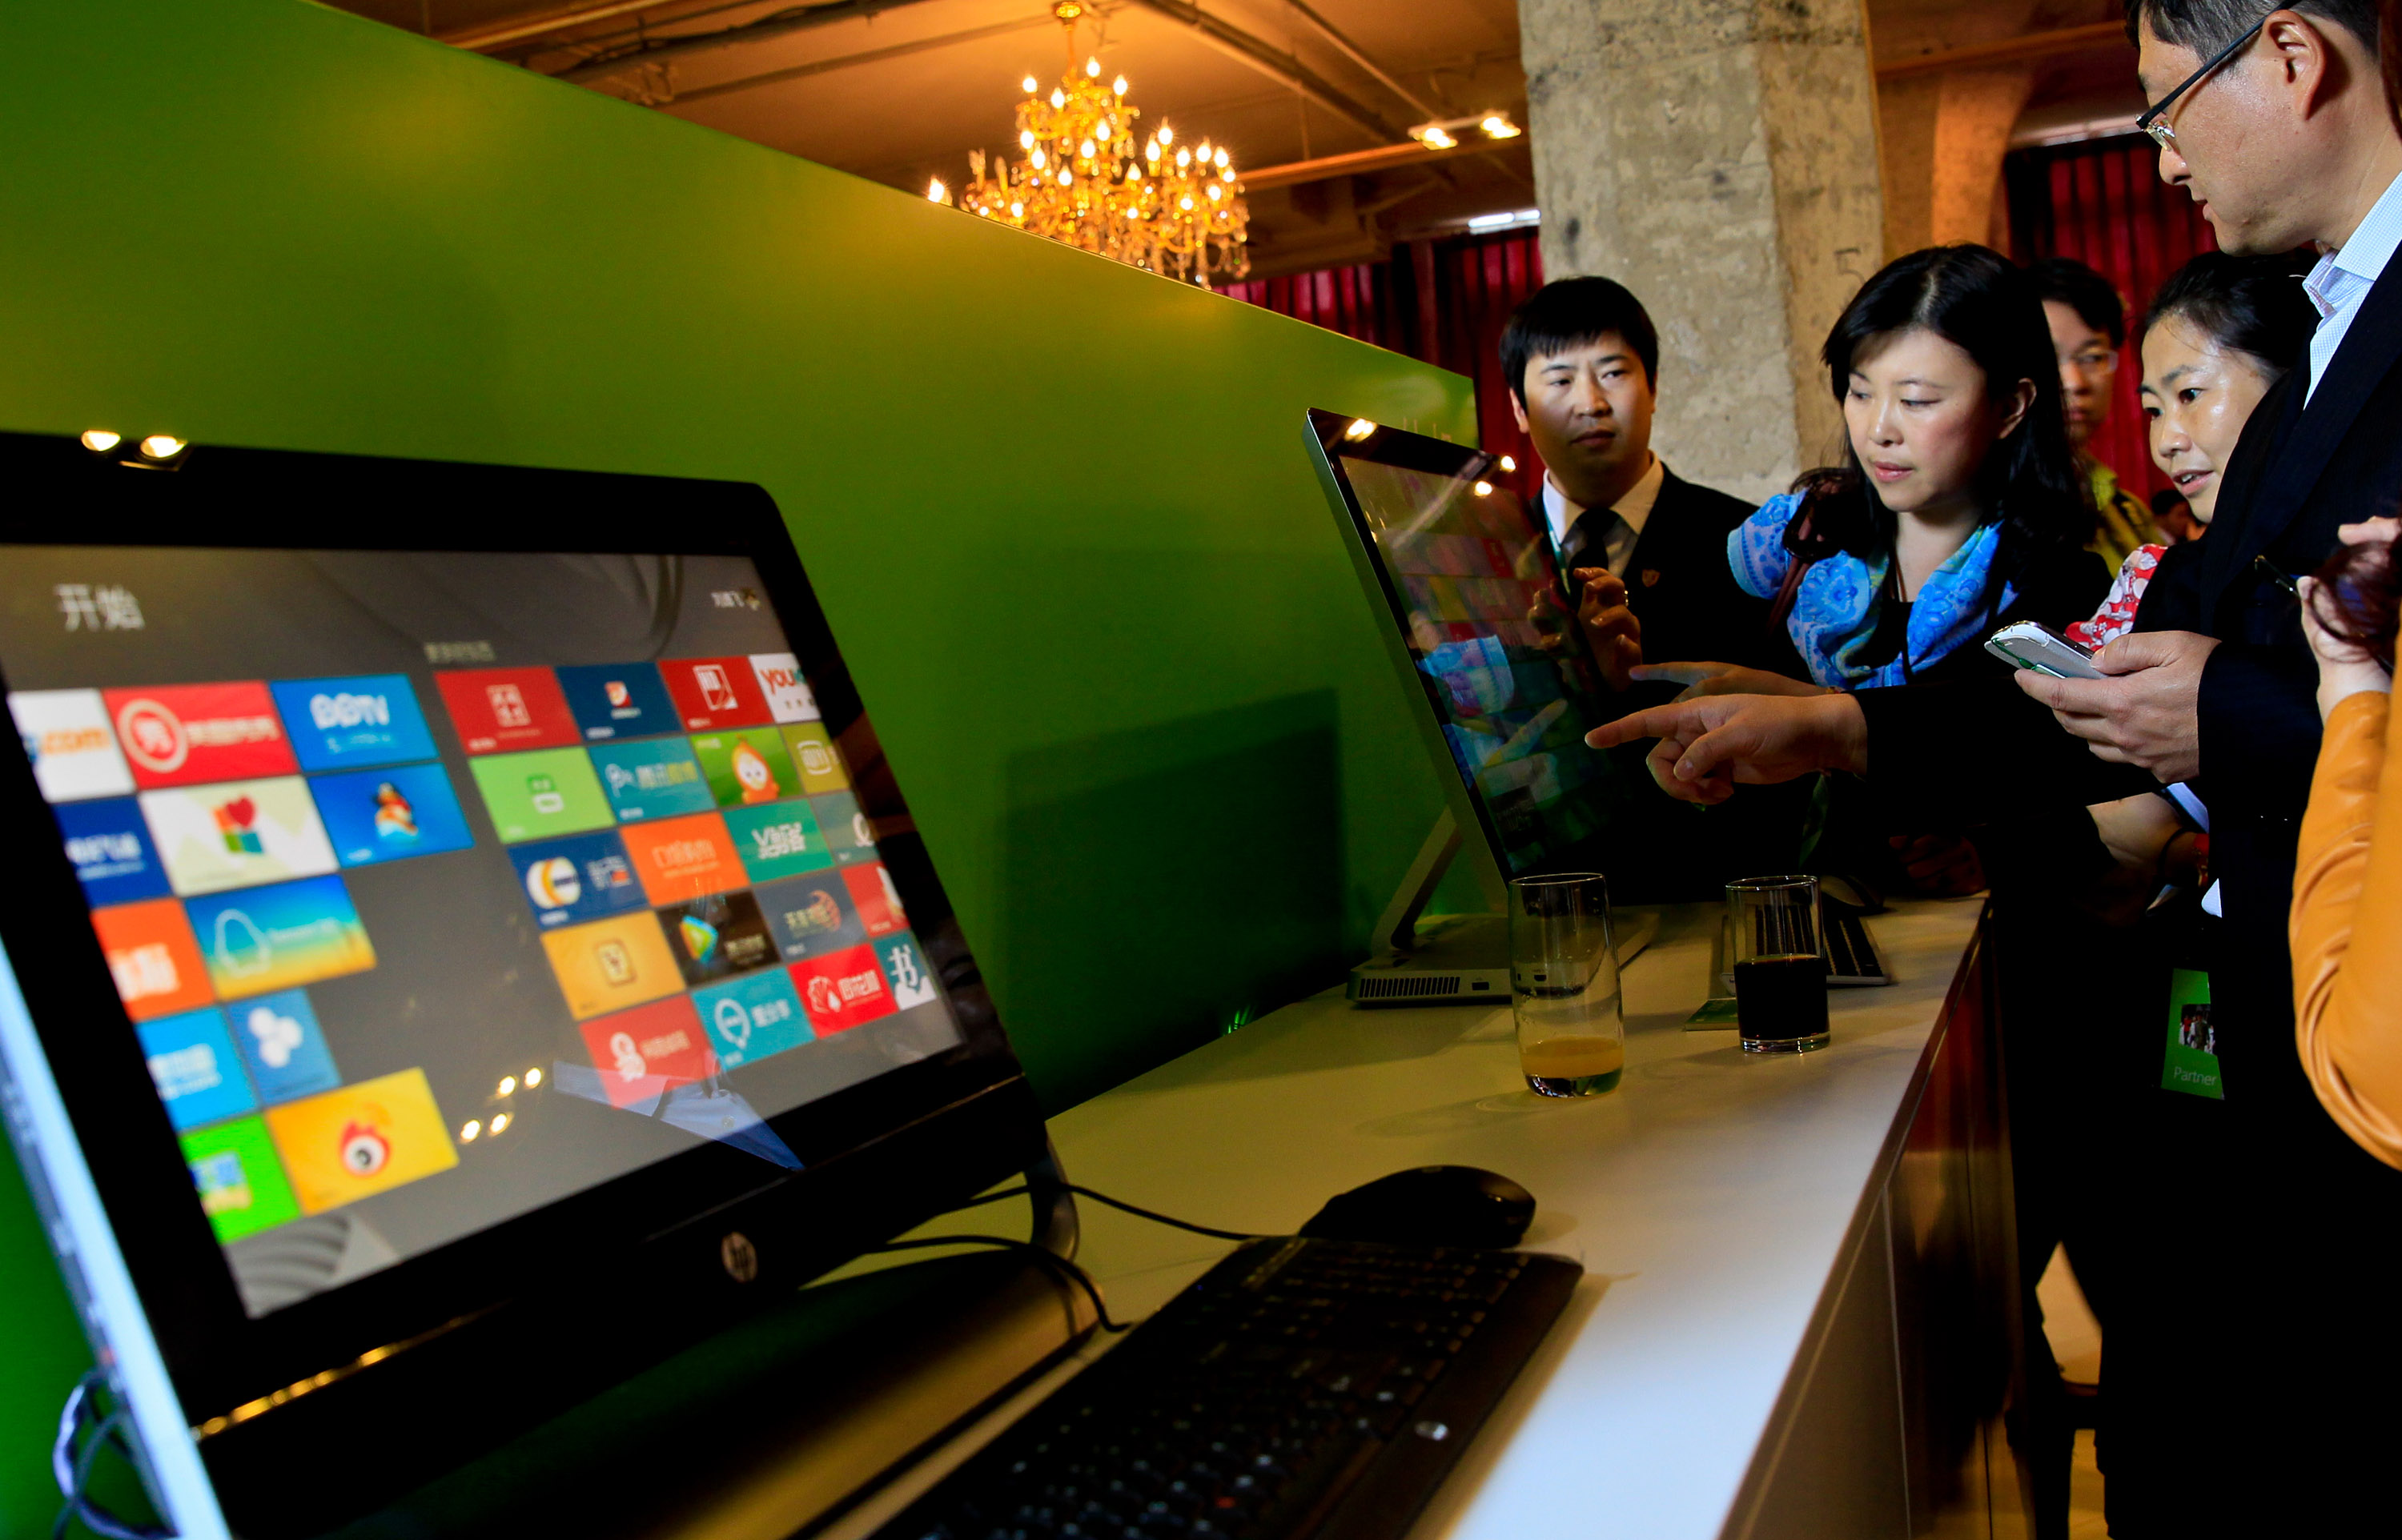 Guests try out the Microsoft Windows 8 operation system on touchable screens of desktop computers during the preview show of the new operation system and tablet computer Surface in Shanghai, China, Oct. 23, 2012.